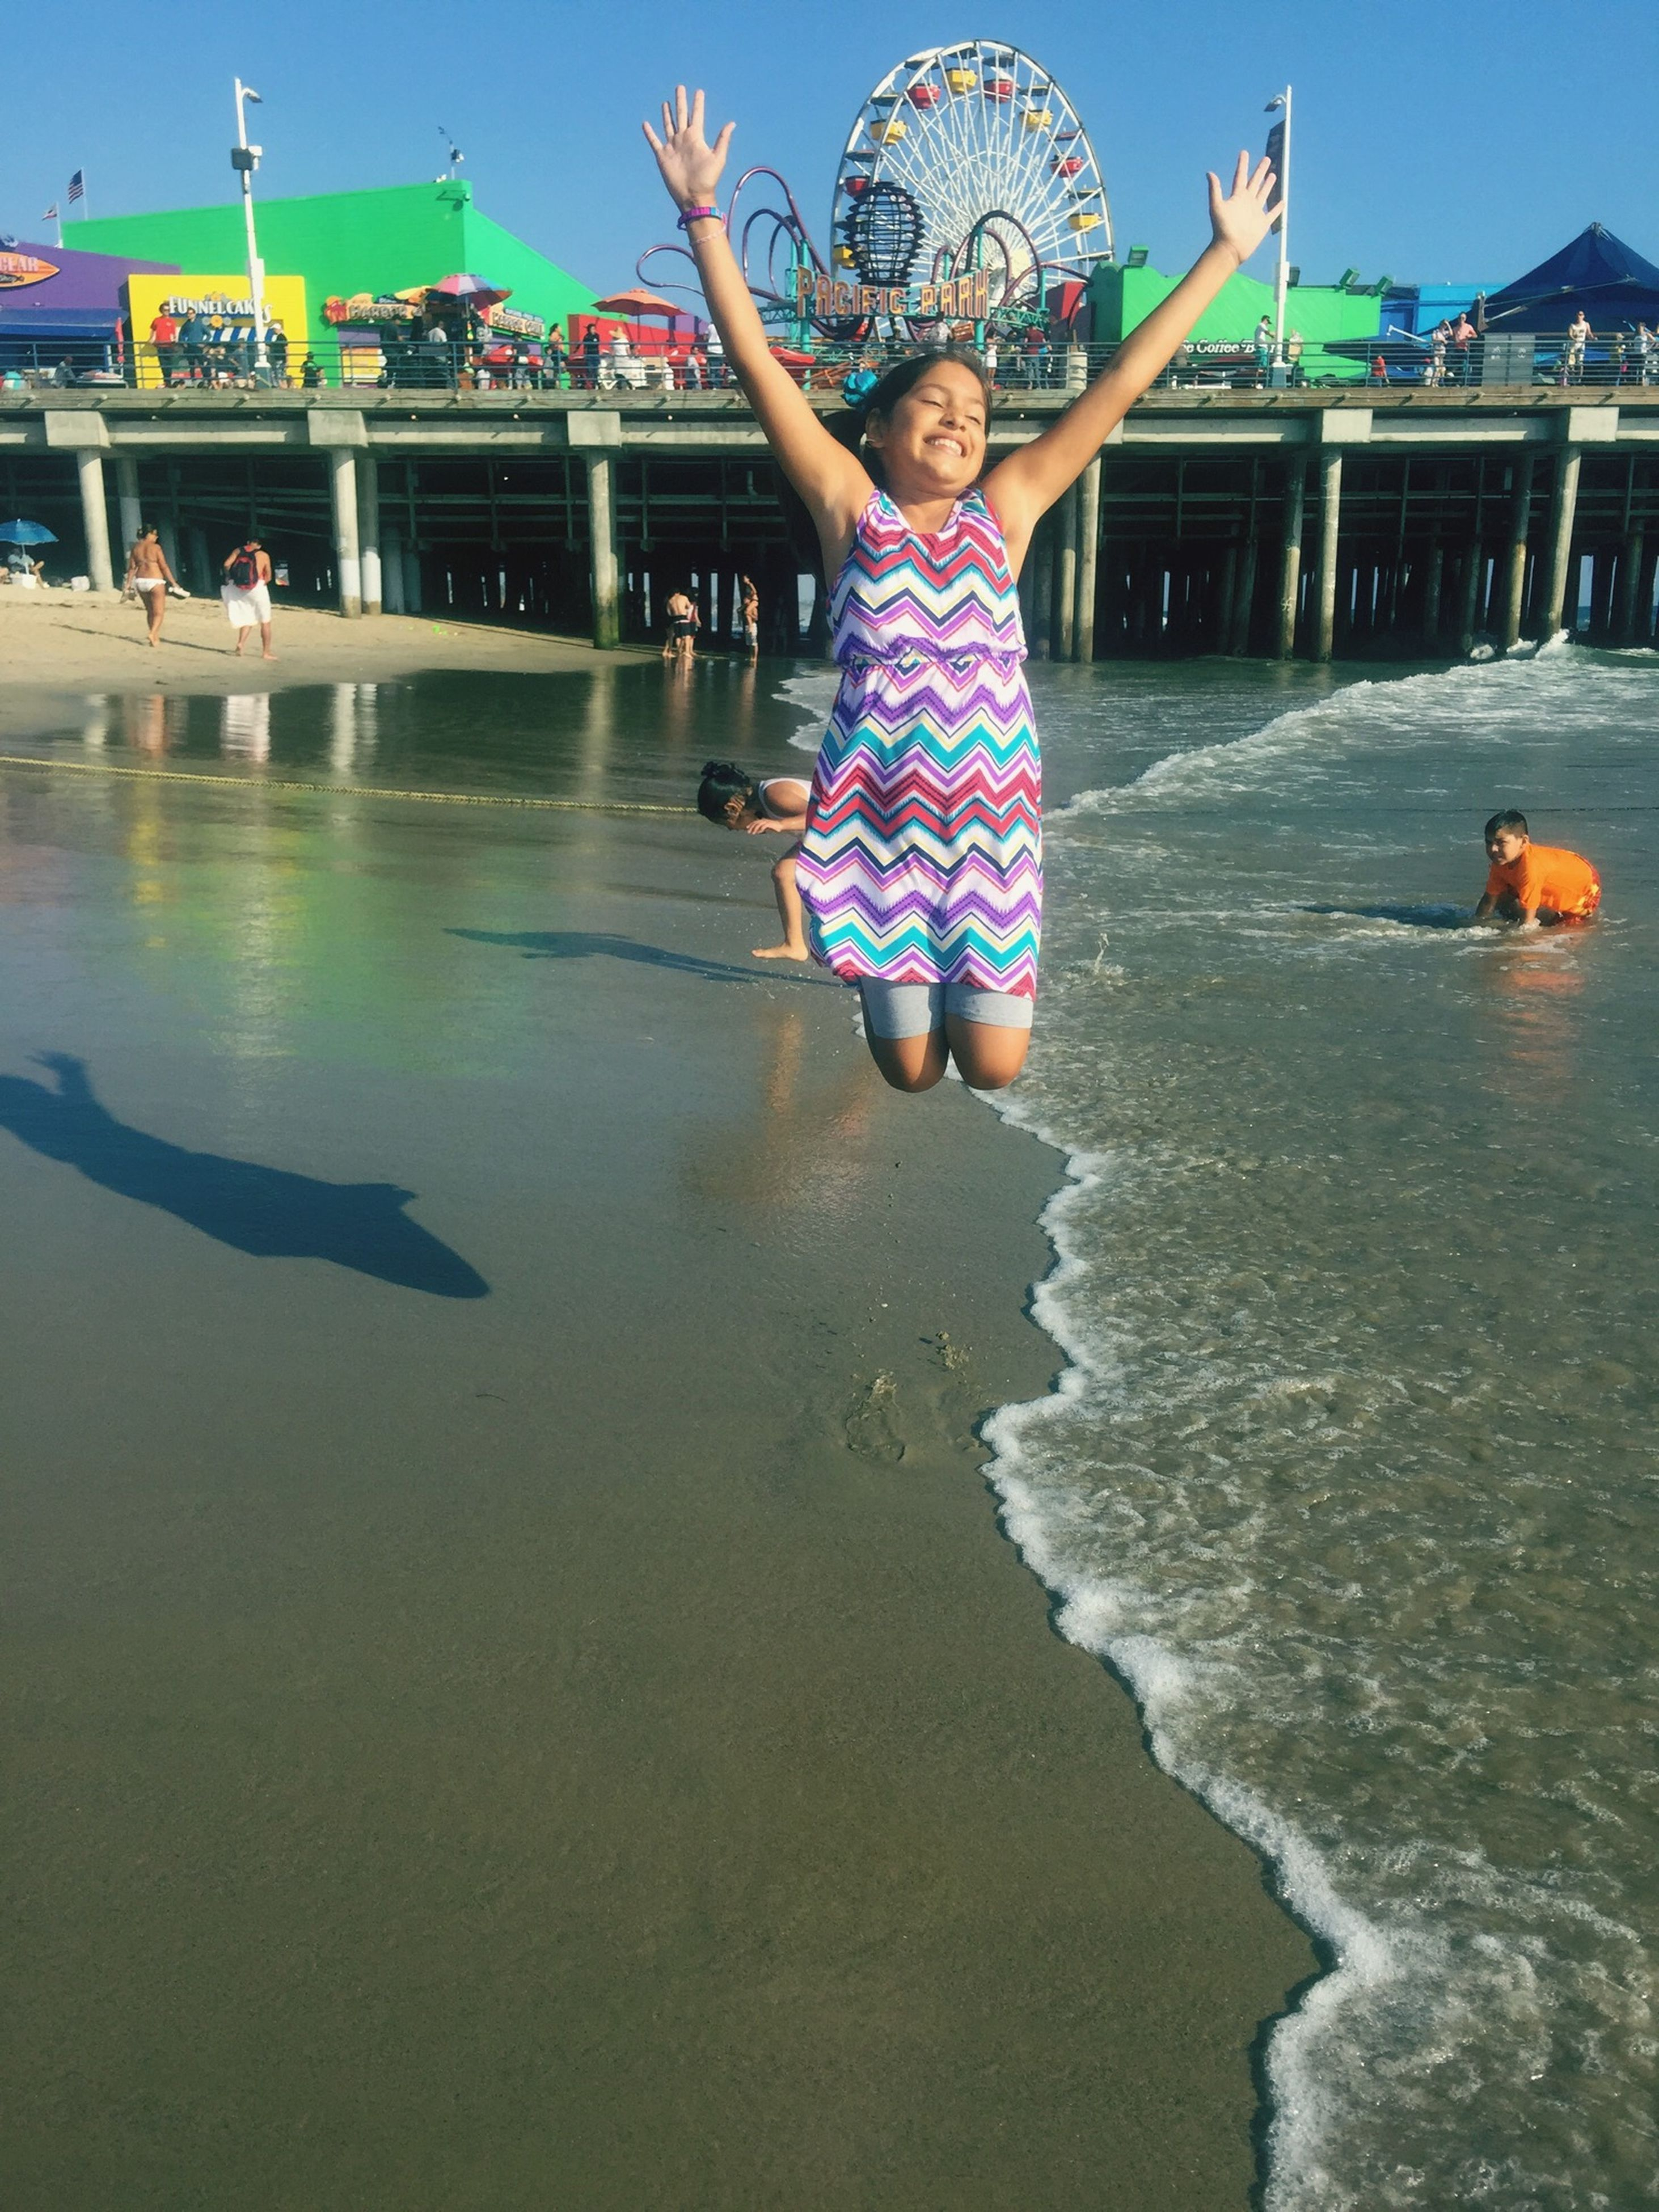 full length, lifestyles, leisure activity, person, casual clothing, childhood, water, fun, enjoyment, front view, happiness, elementary age, mid-air, young adult, girls, jumping, standing, boys